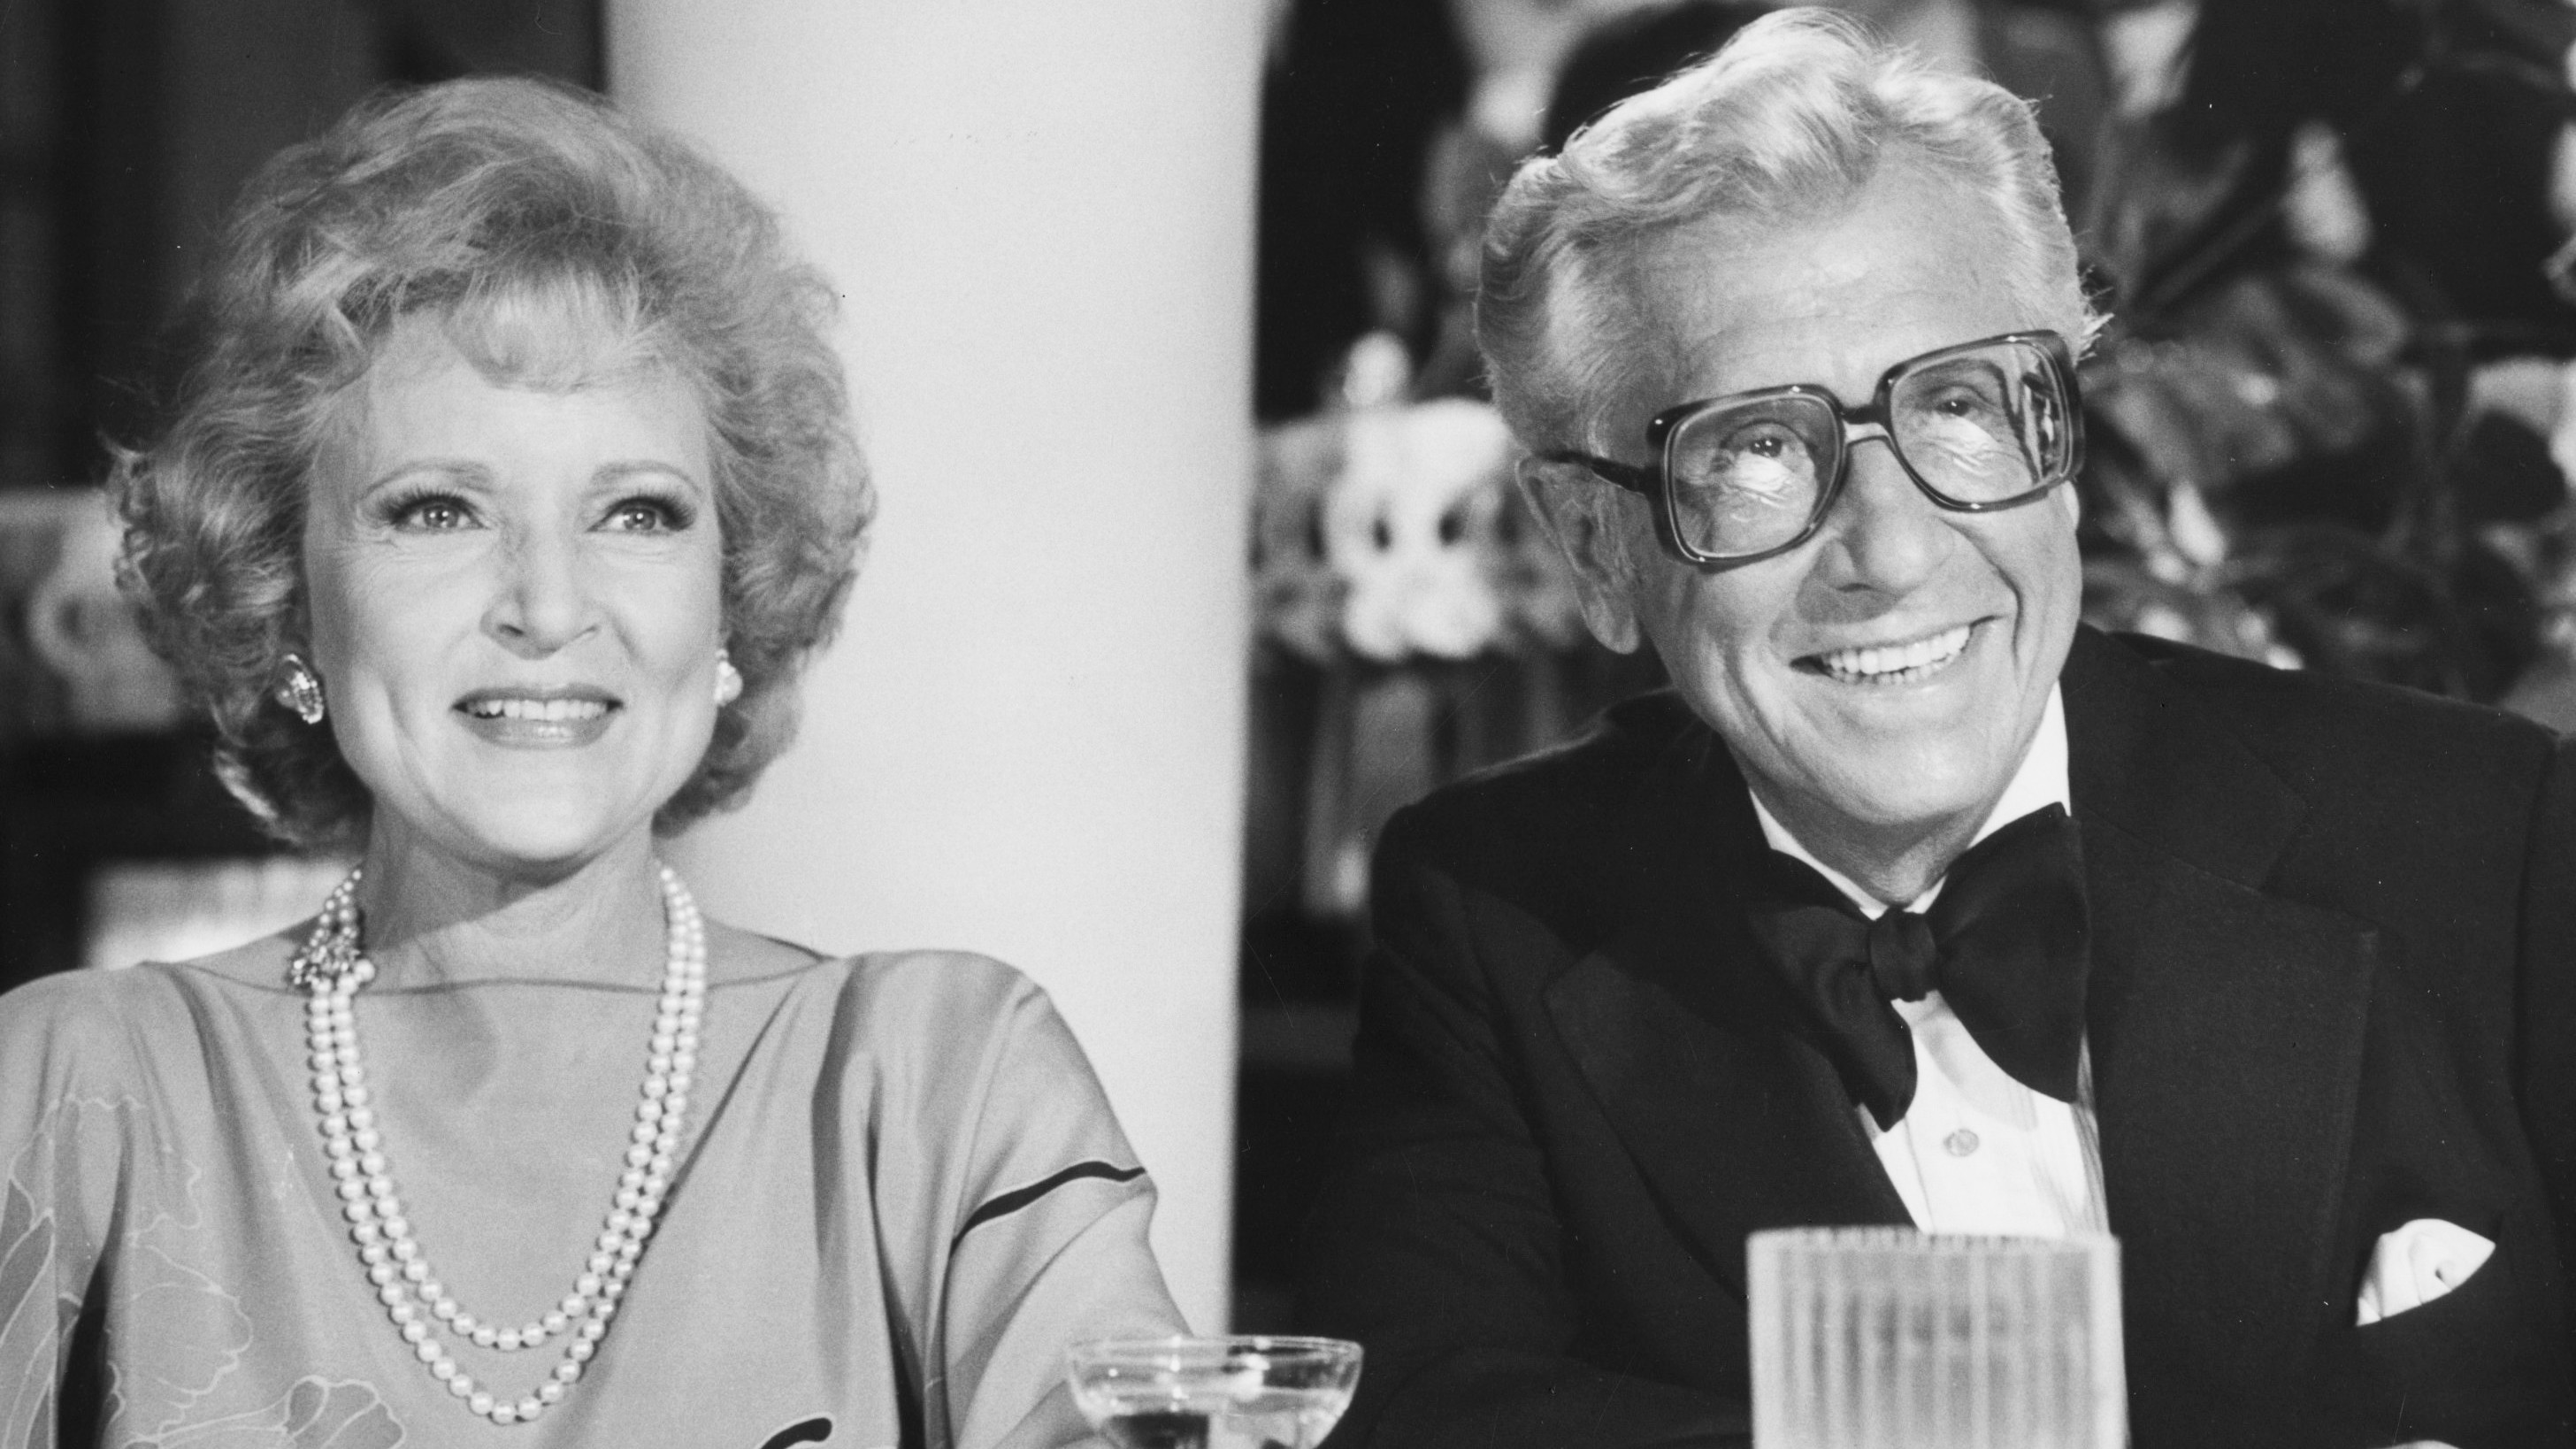 Black and White photo of Betty White with her husband Allen Ludden in a get together